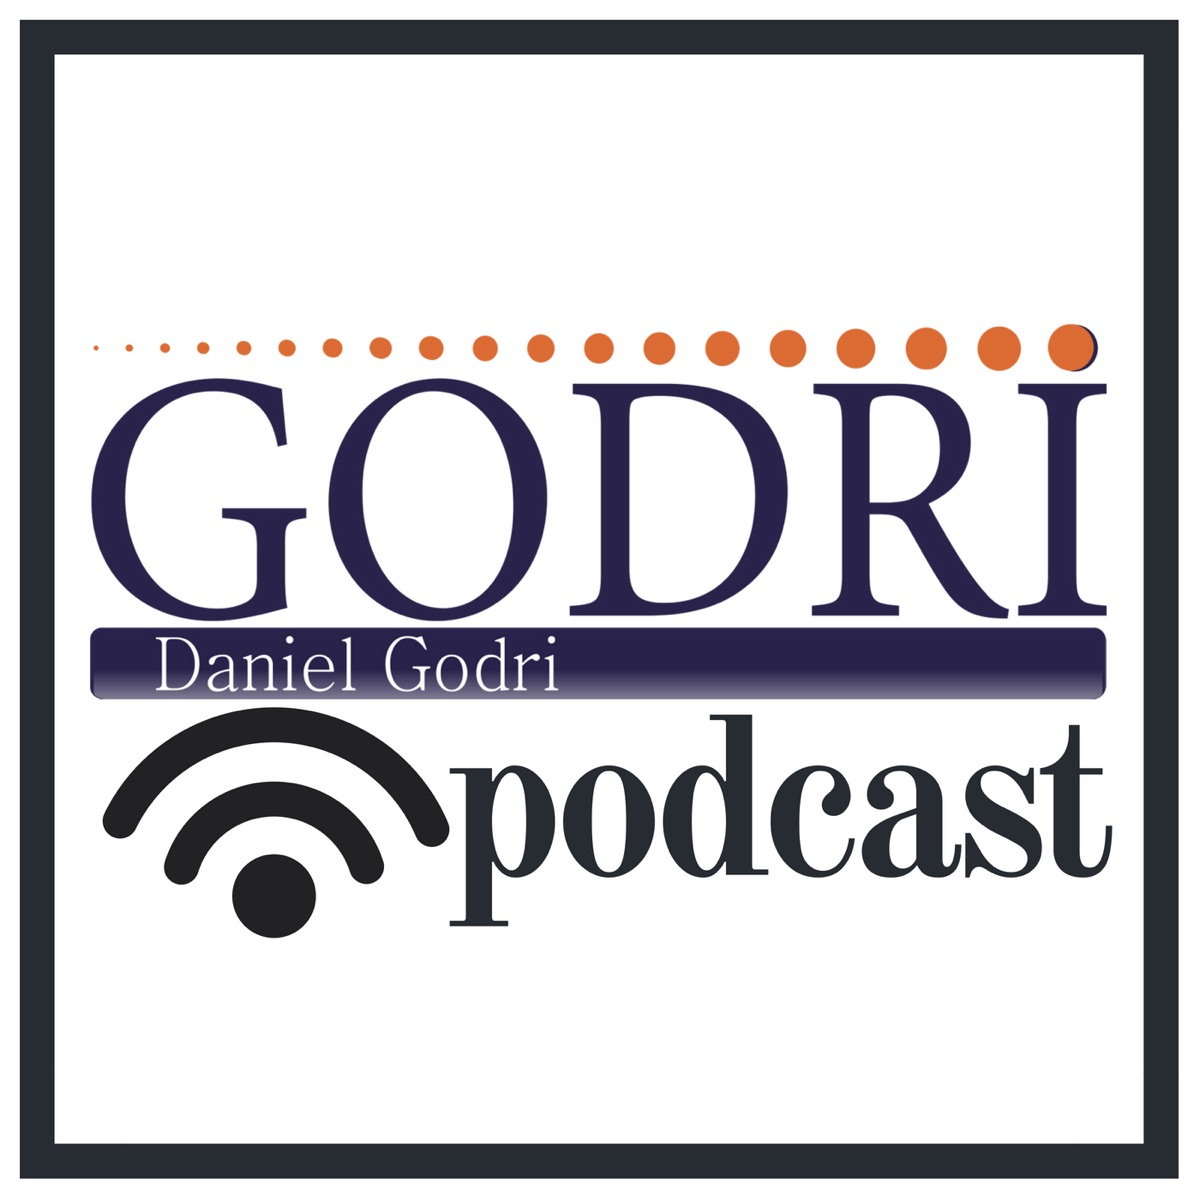 PodCast – Economia Colaborativa [QG do Godri]